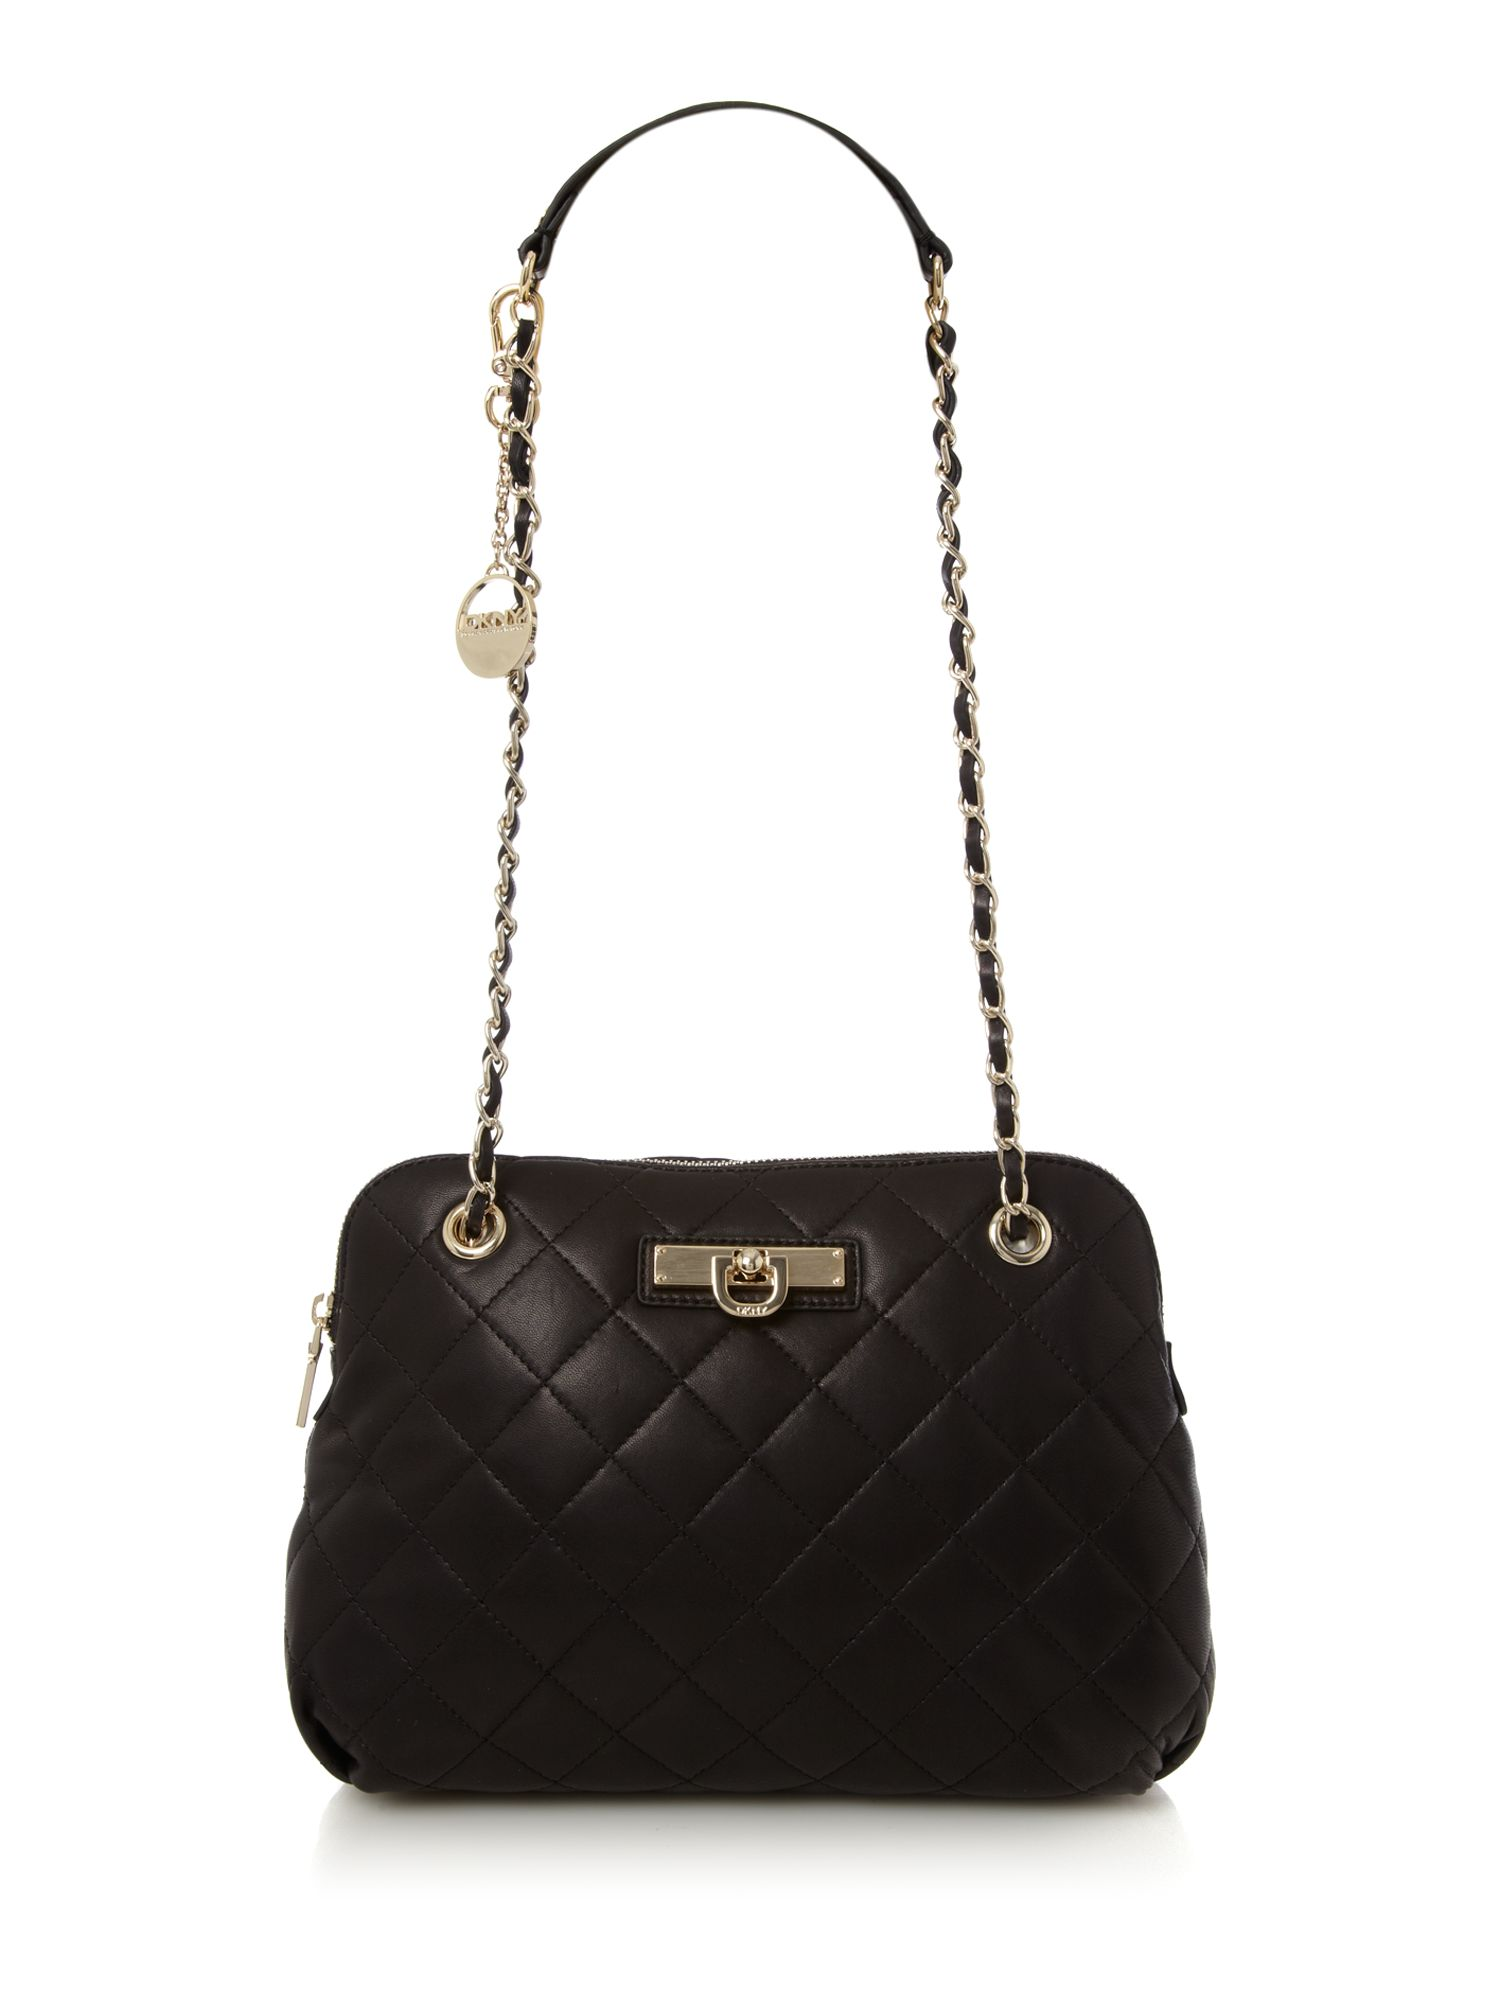 DKNY Medium Quilted Crossbody Bag in Black